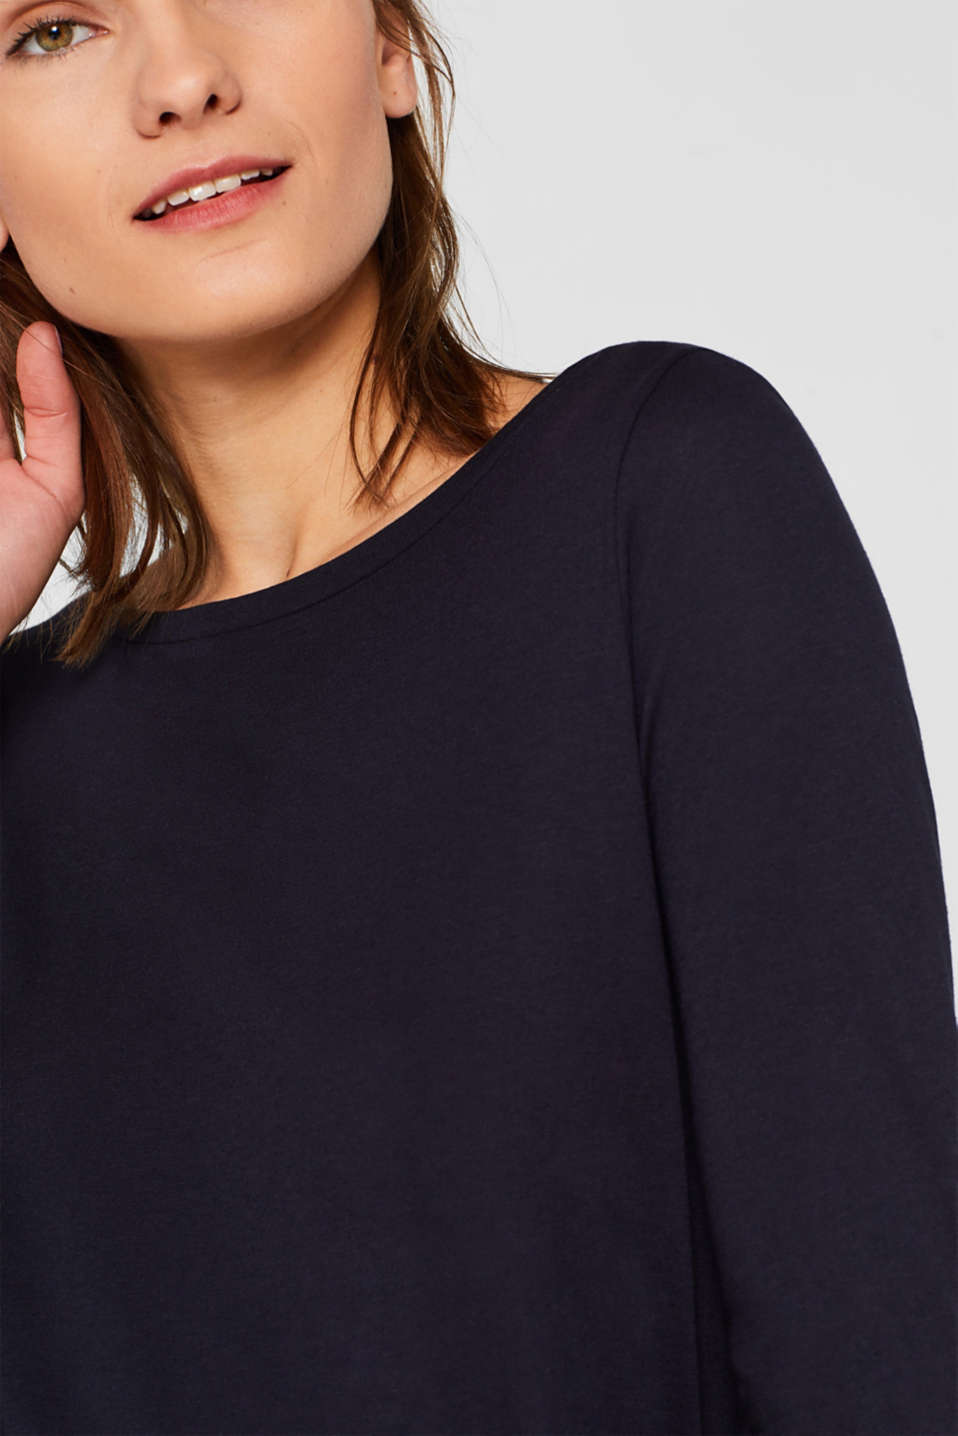 Two-pack: Long sleeve top with organic cotton, NAVY, detail image number 6